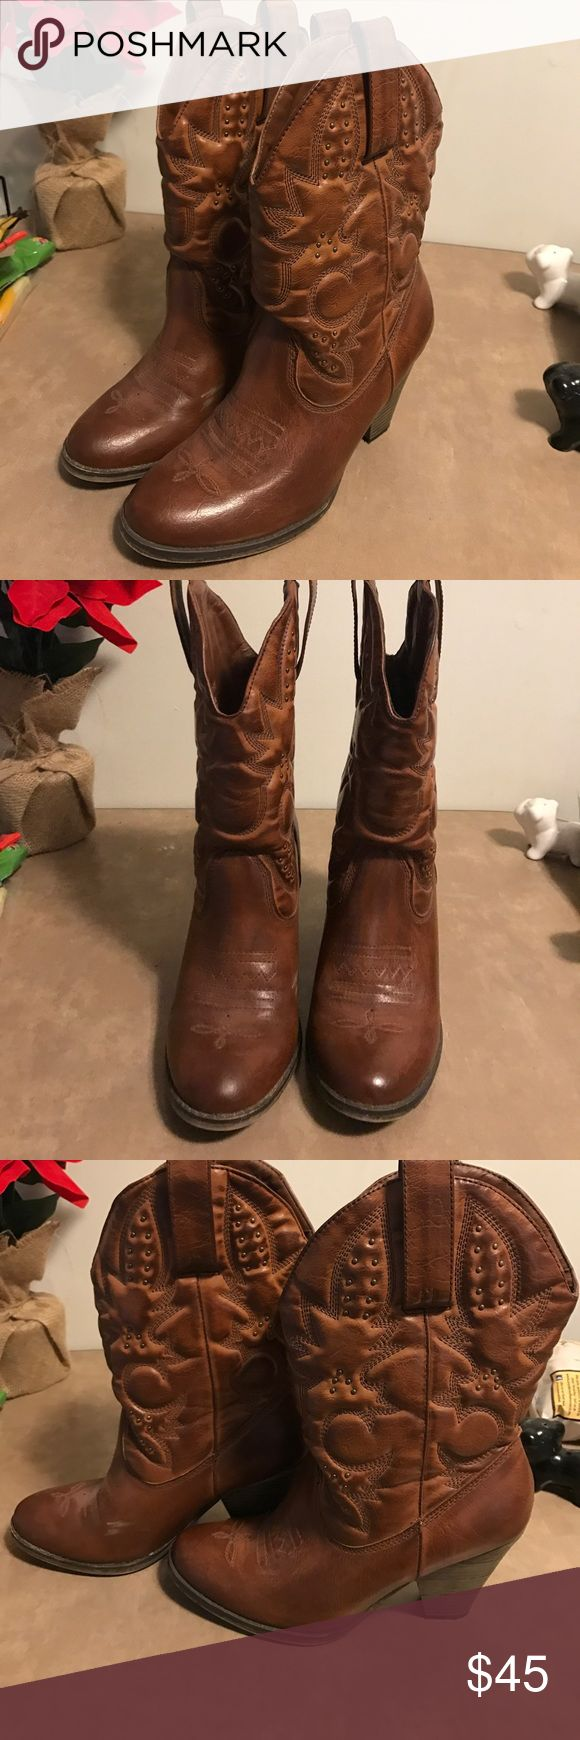 MIA Girl Size 9 Boots Look to pictures for any flaws. Super cute for all the country concerts coming up this summer! mia girl Shoes Heeled Boots